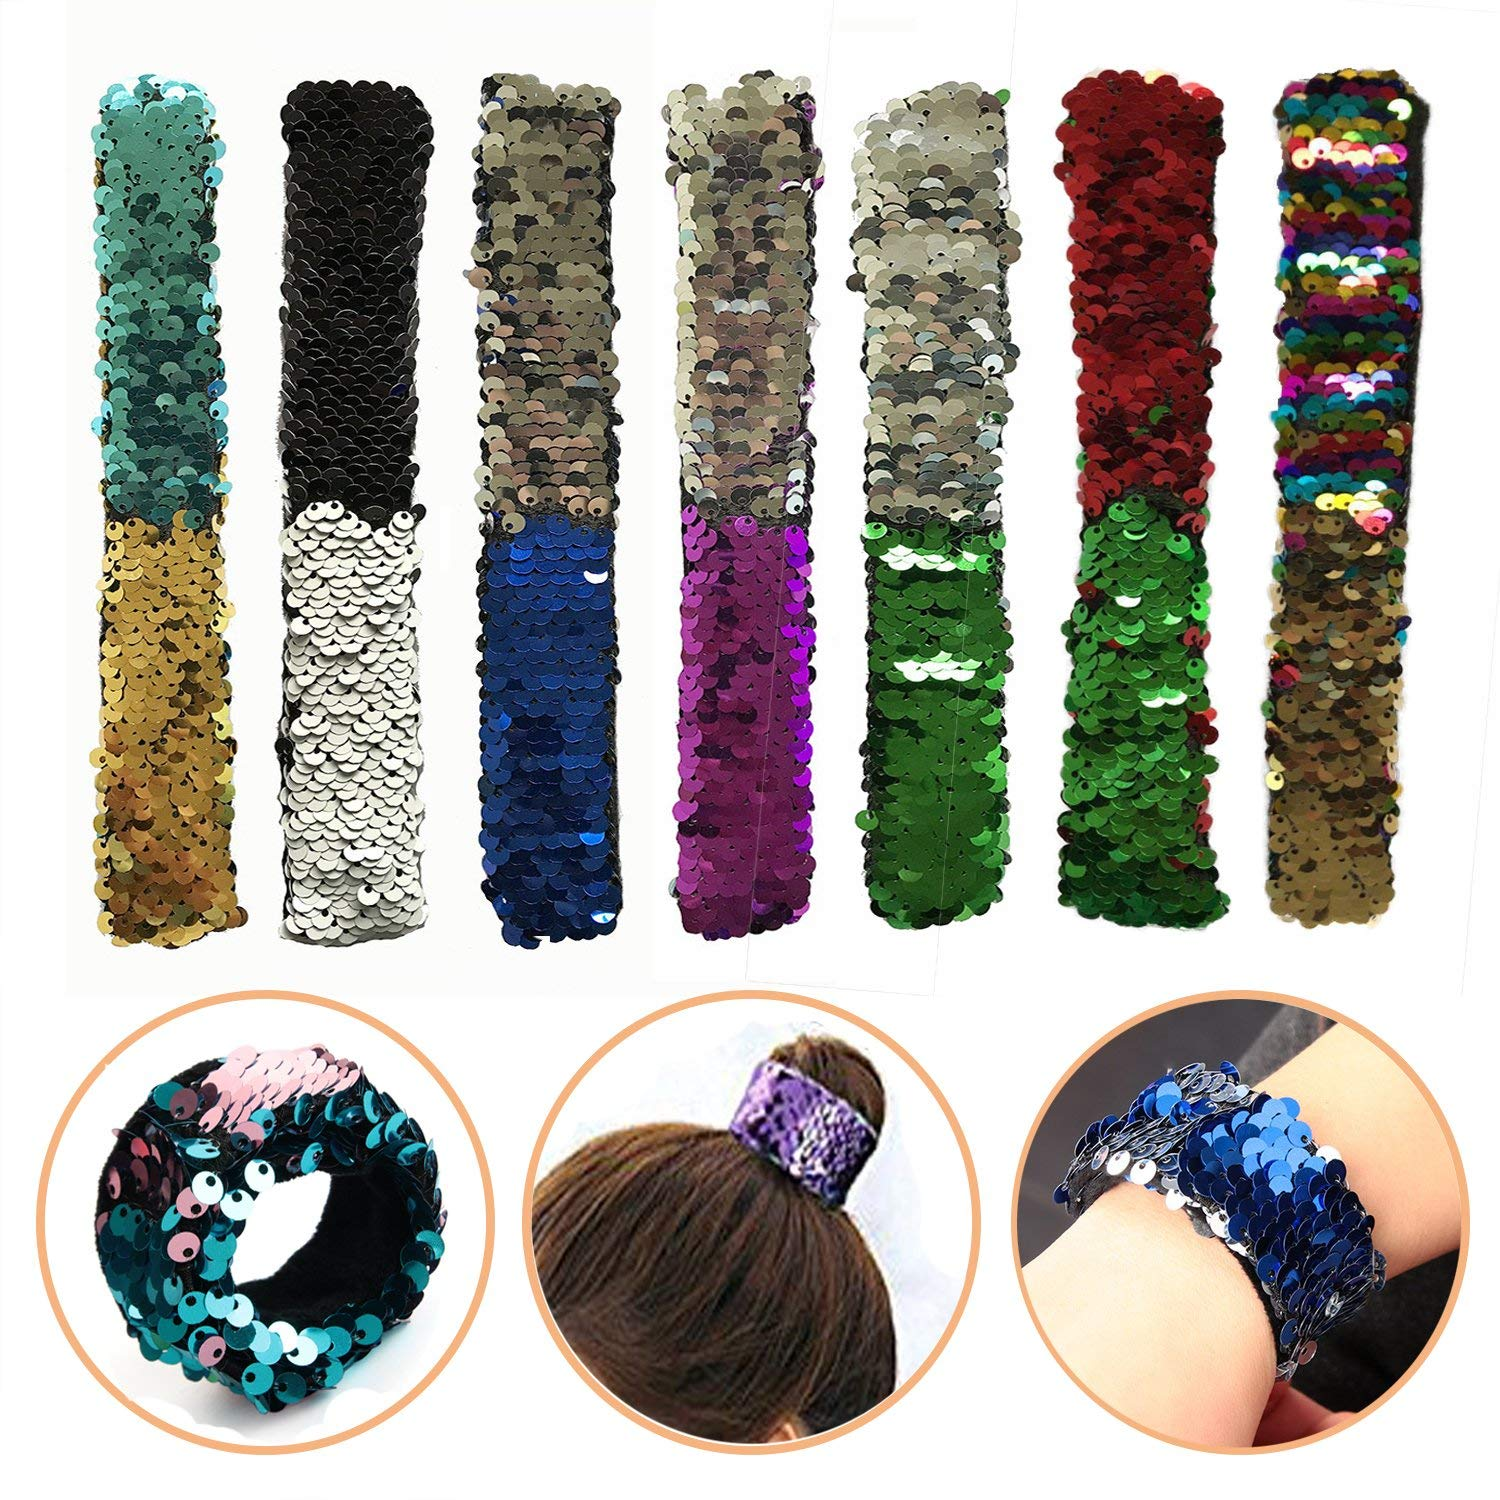 HOOPE 7 Pack Slap Bracelet Reversible Sequin Mermaid WristBand Hairband, Party Favors Birthday Christmas Gifts Toys Stage Charm Decorative